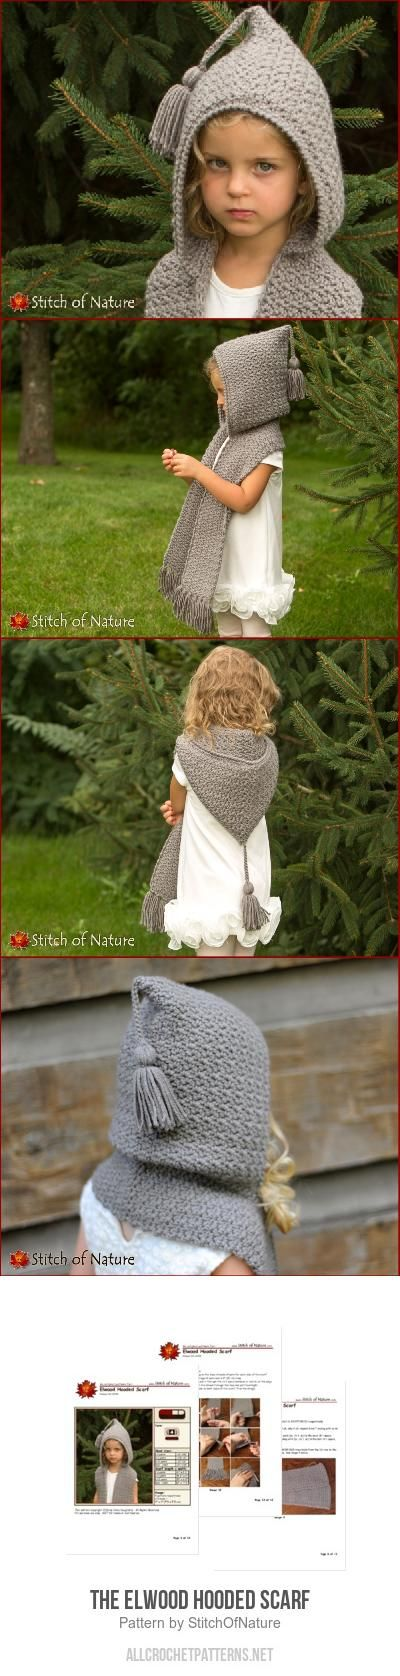 The Elwood Hooded Scarf Crochet Pattern By Stitch Of Nature Hooded